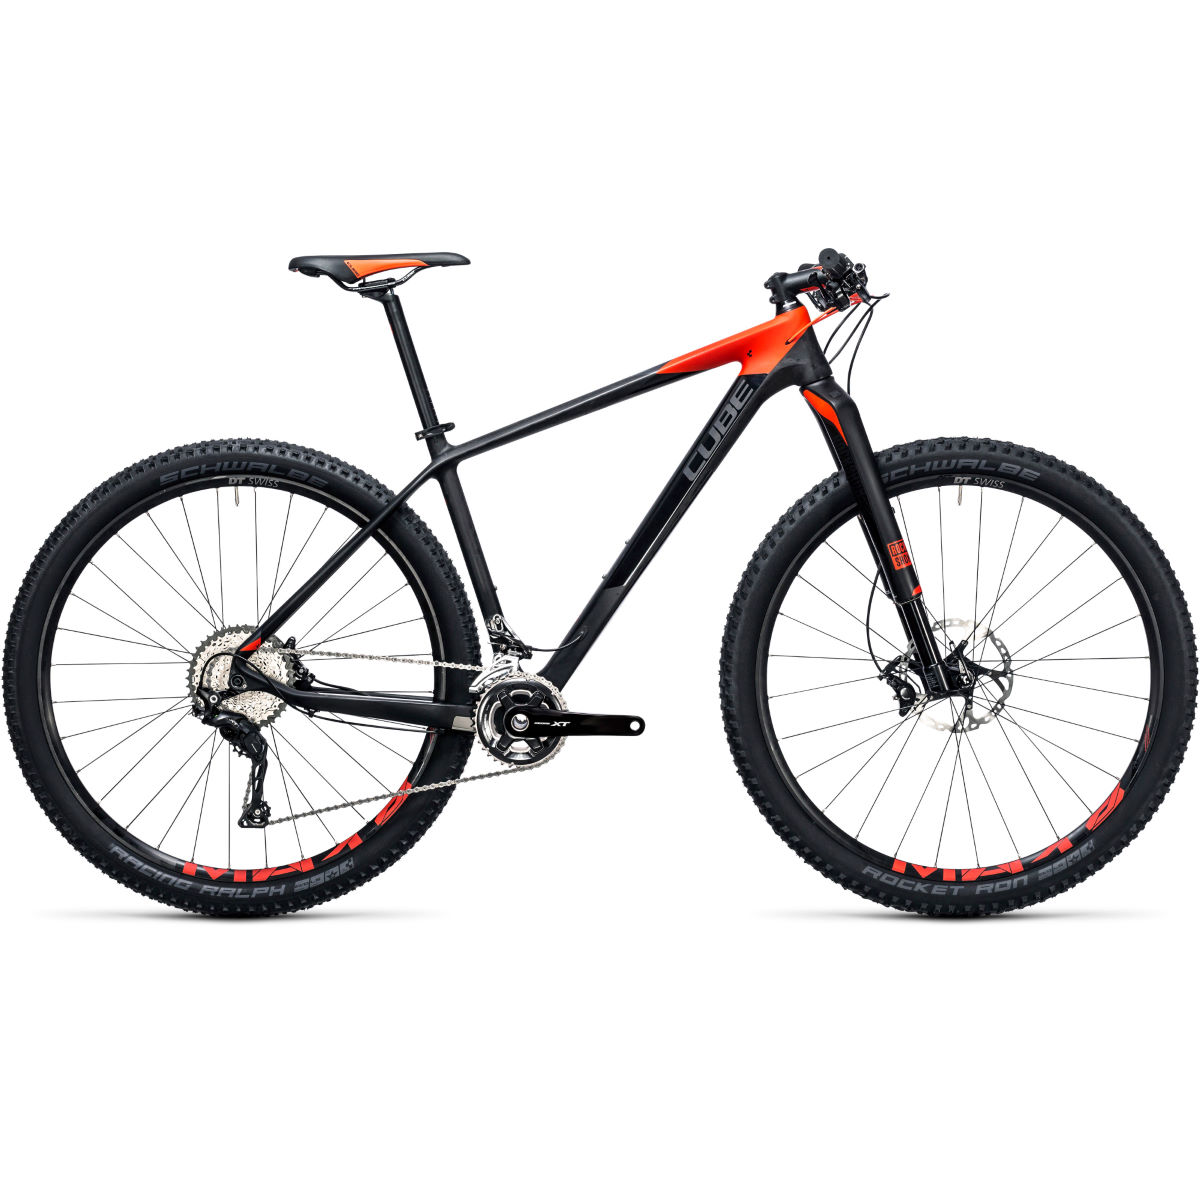 VTT semi-rigide Cube Reaction GTC SLT 29 pouces - 17'' Stock Bike